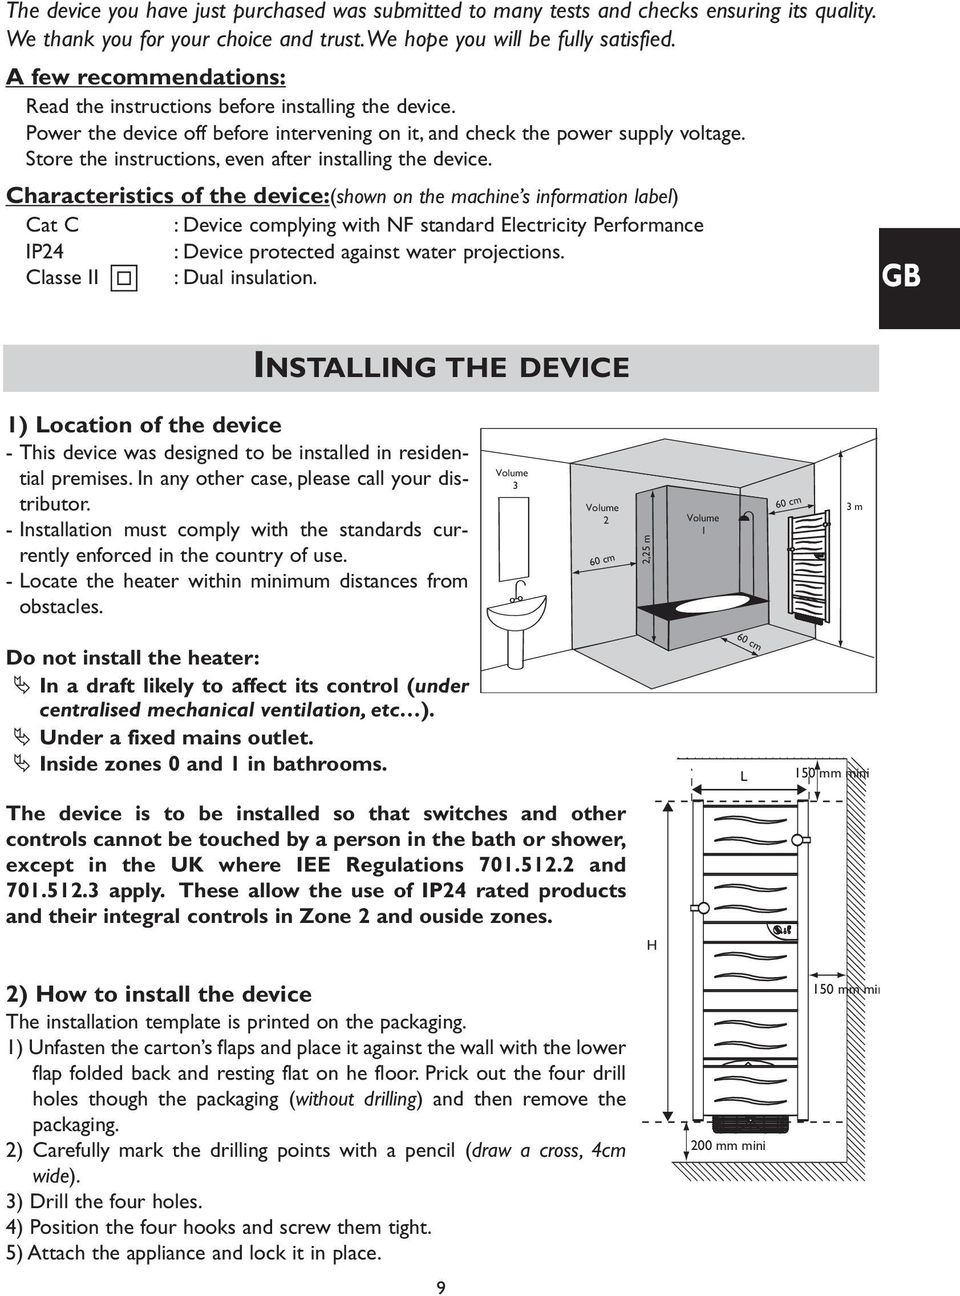 Store the instructions, even after installing the device.